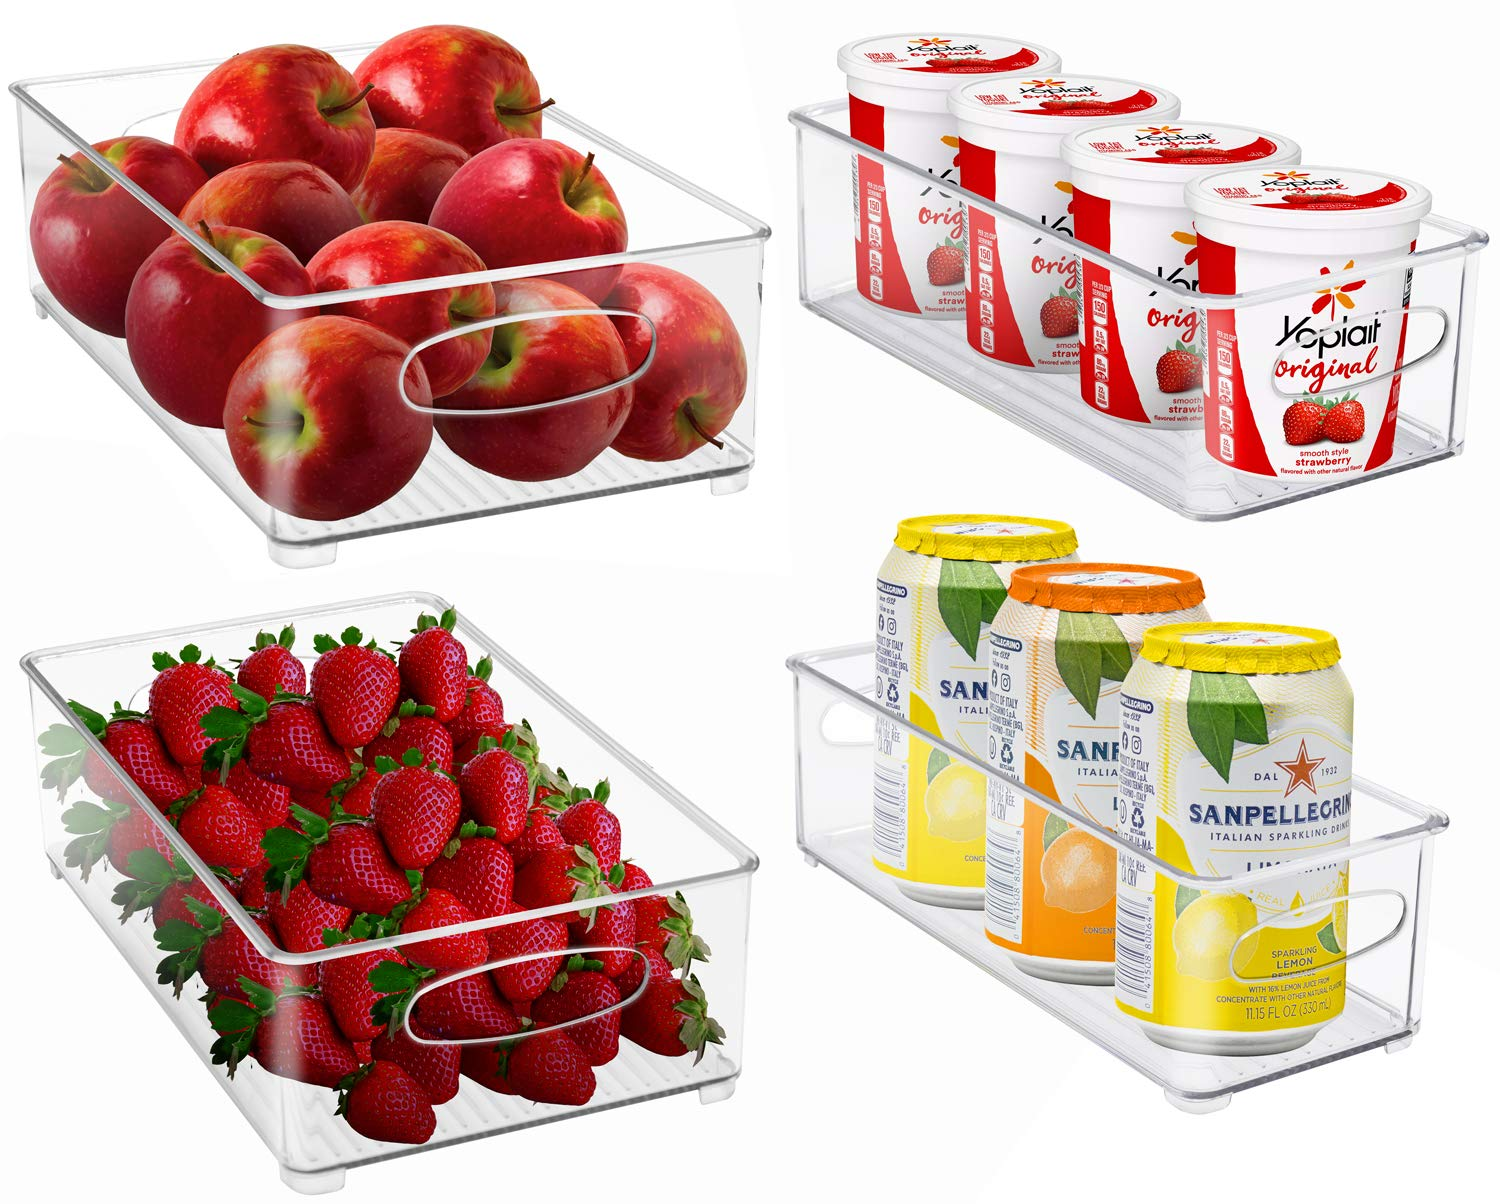 Sorbus Plastic Storage Bins Stackable Clear Pantry Organizer Box Bin Containers for Organizing Kitchen Fridge, Food, Snack Pantry Cabinet, Fruit, Vegetables, (Wide & Narrow - Pack of 4)